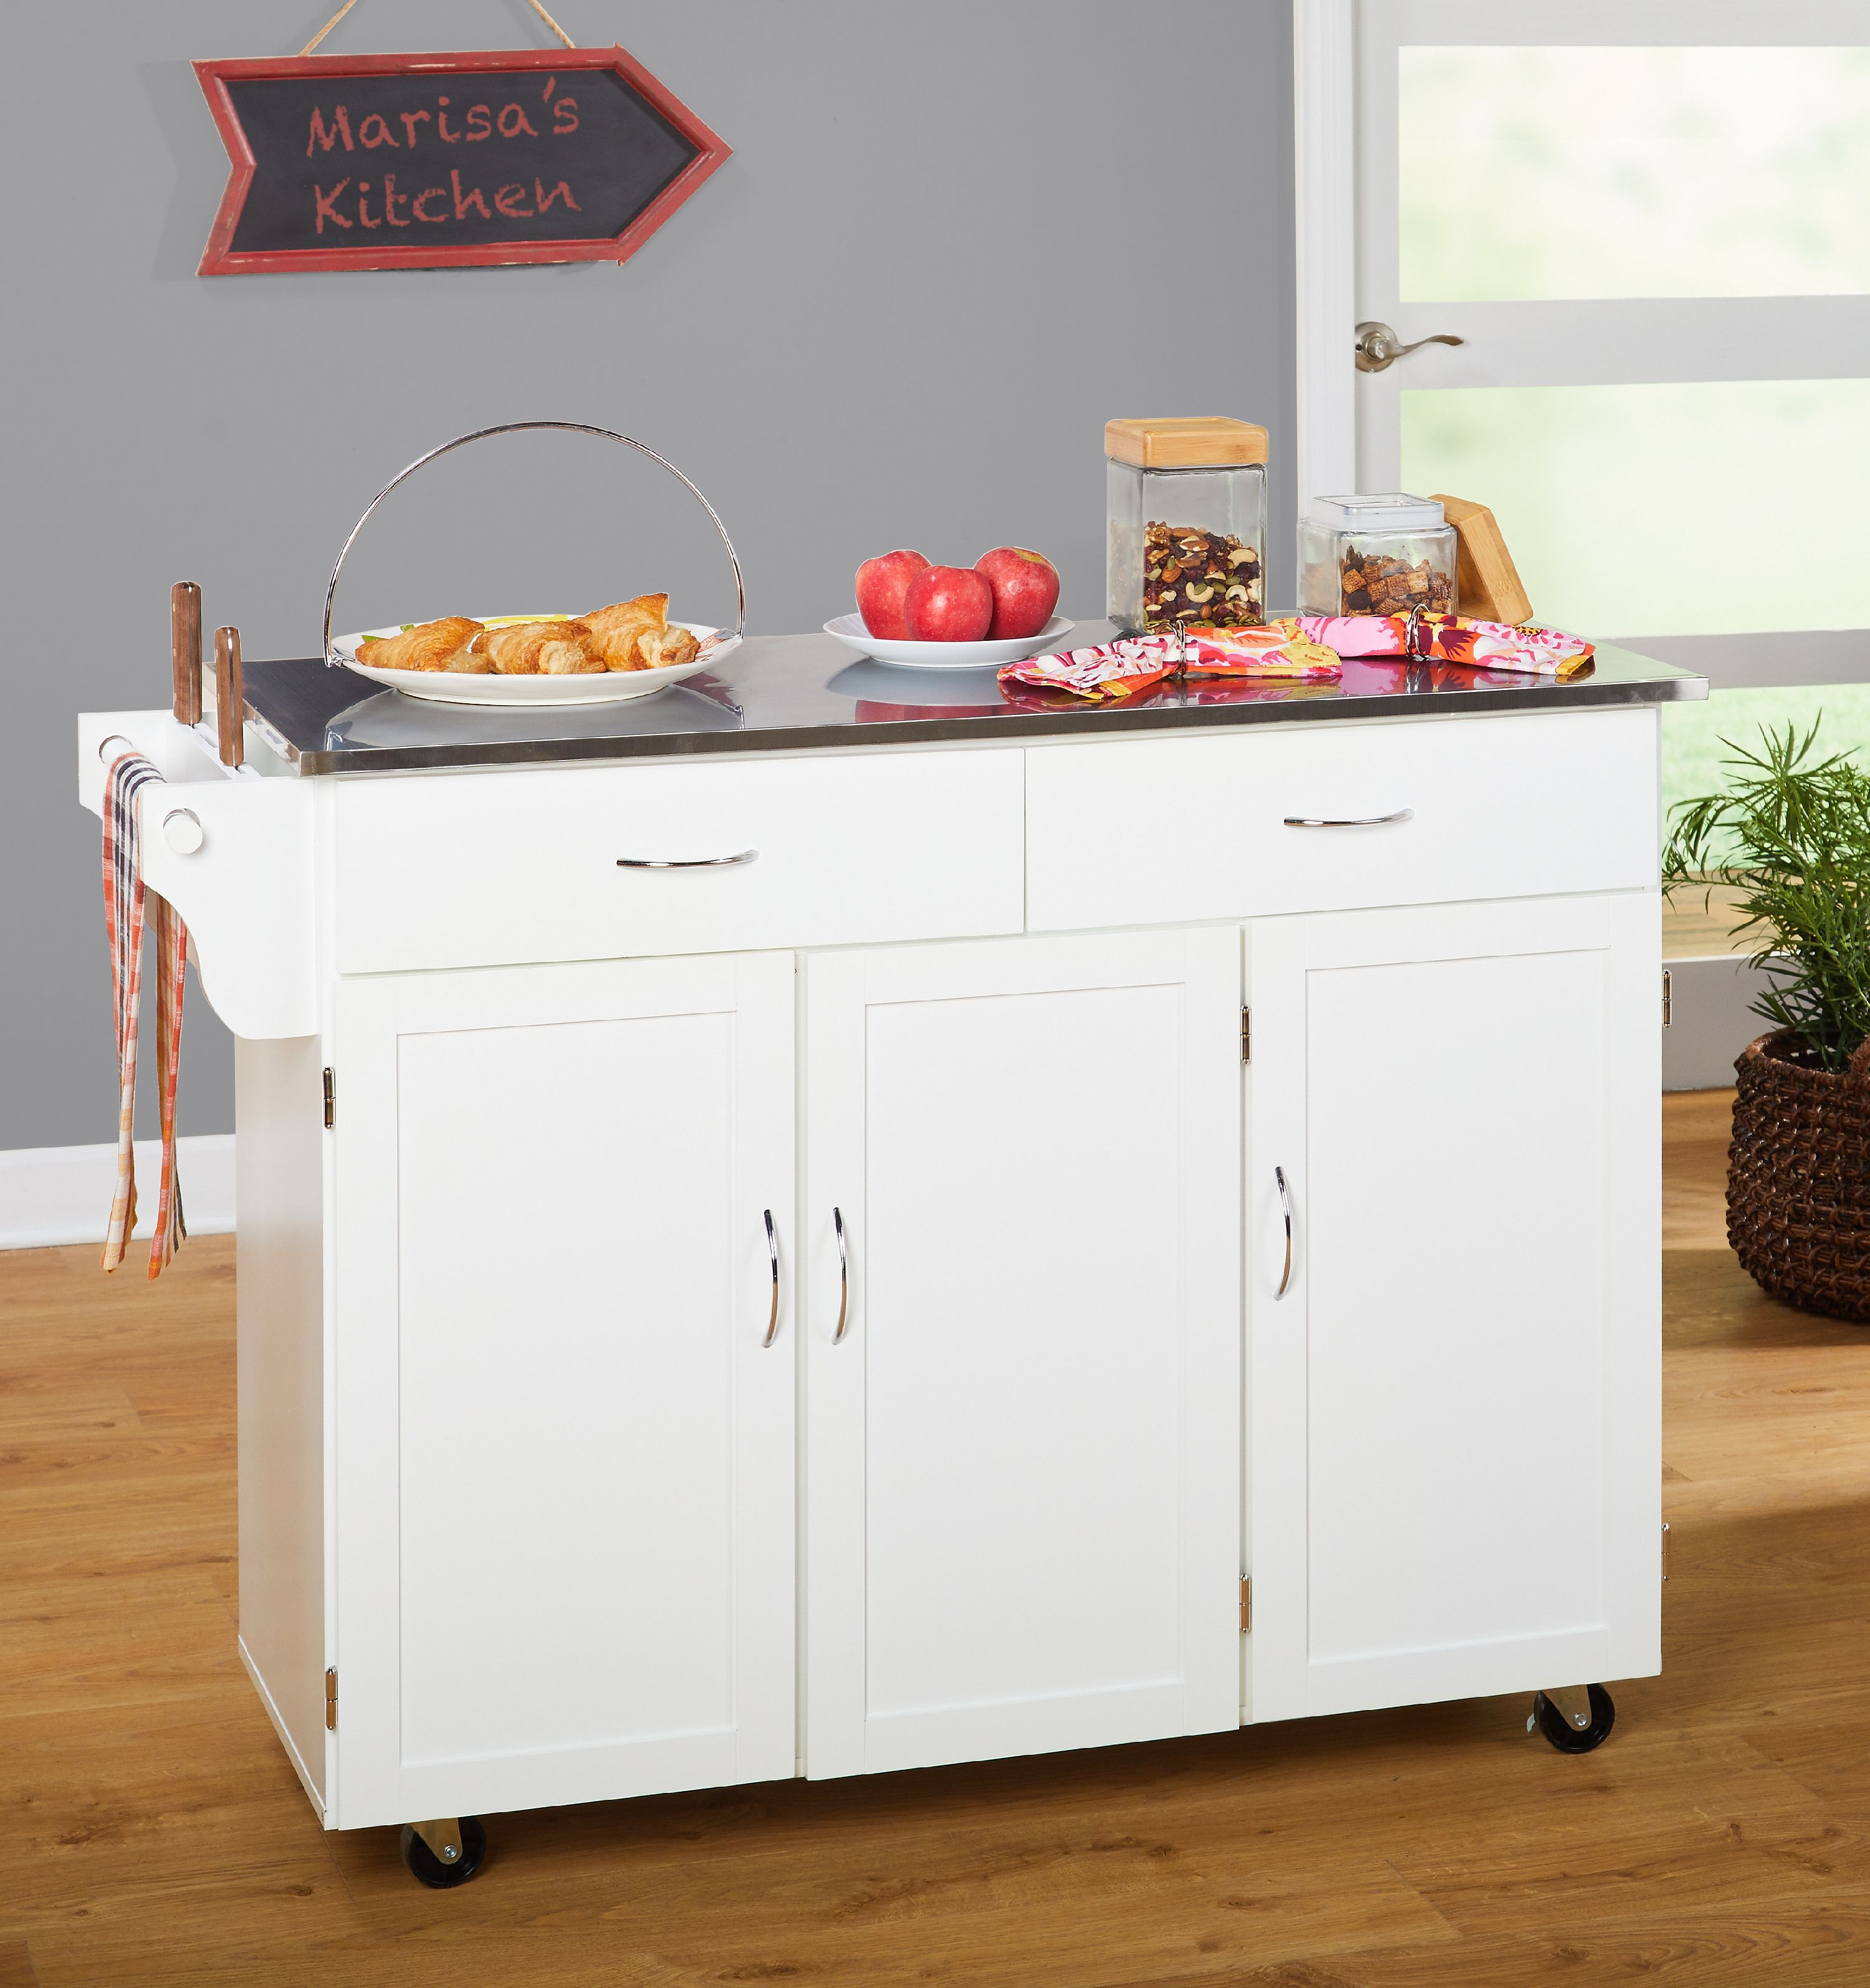 large kitchen cart design your own lowes extra white with stainless steel top box a walmart com